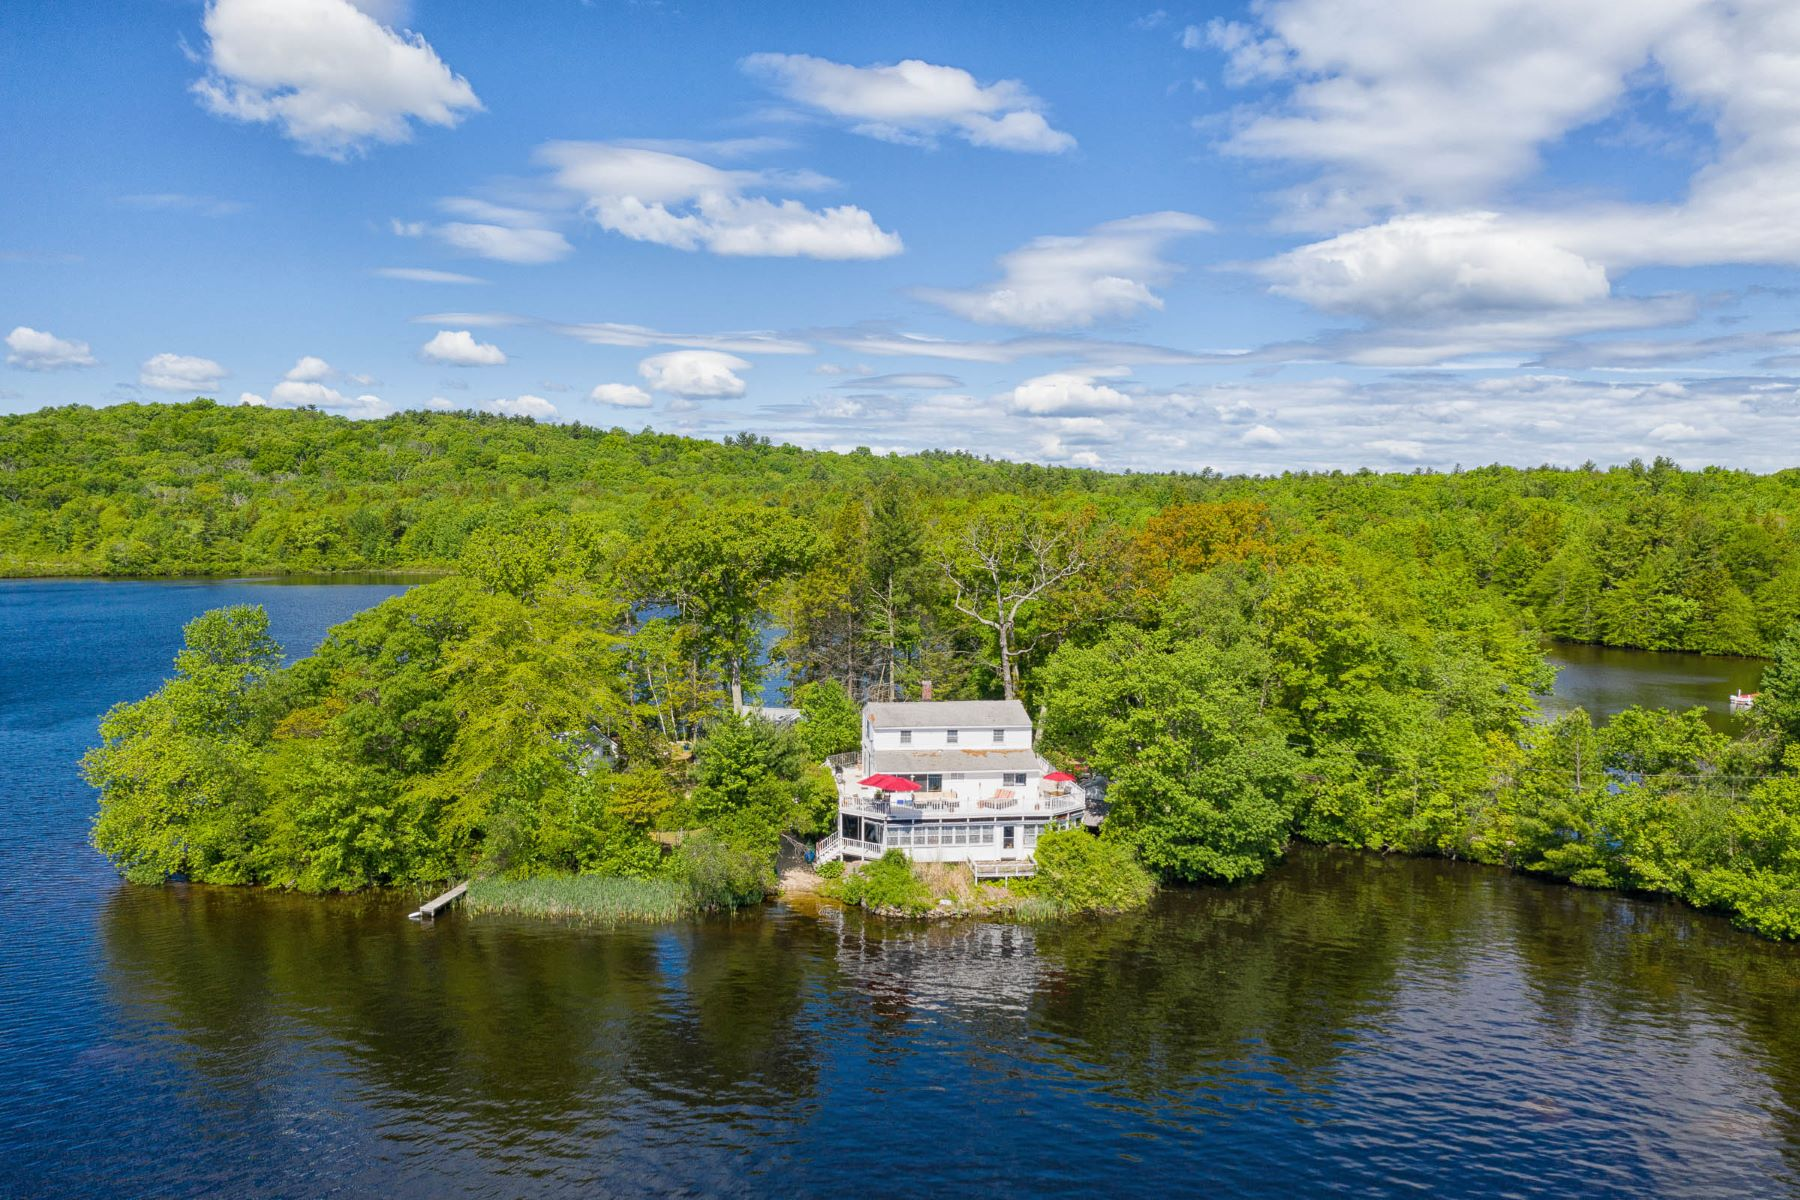 Multi-Family Homes for Sale at 115 Sand Dam Road, Glocester, RI 115 Sand Dam Road Glocester, Rhode Island 02814 United States